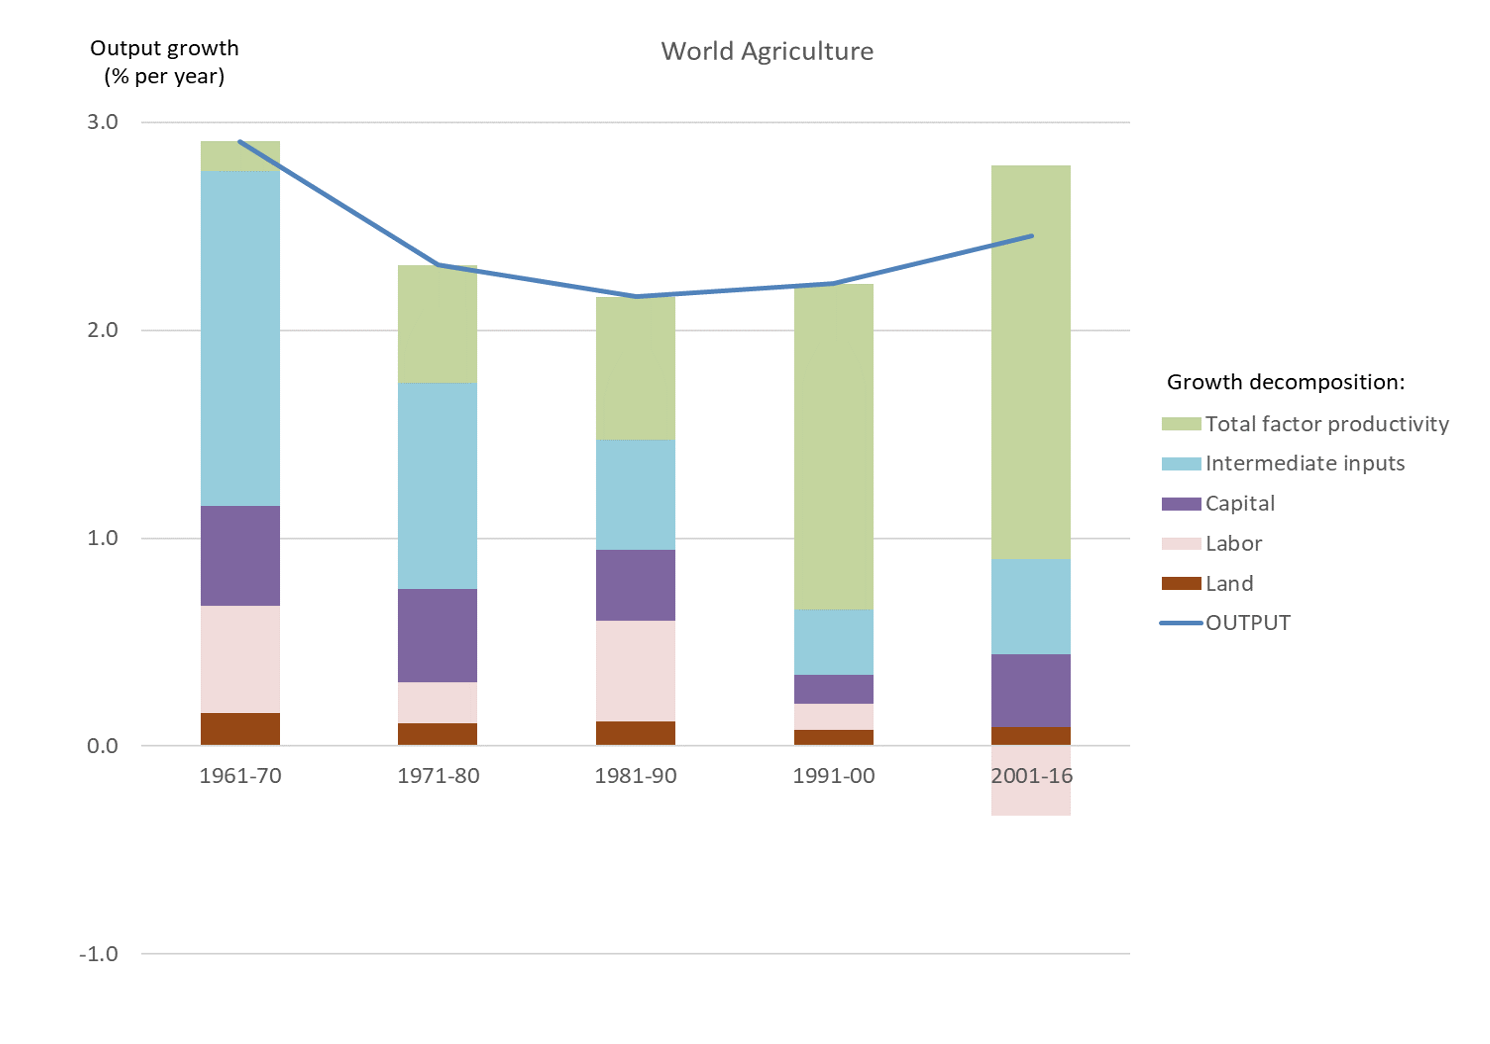 Figure 2. Sources of output growth in world agriculture. Source: USDA-ERS (2019)